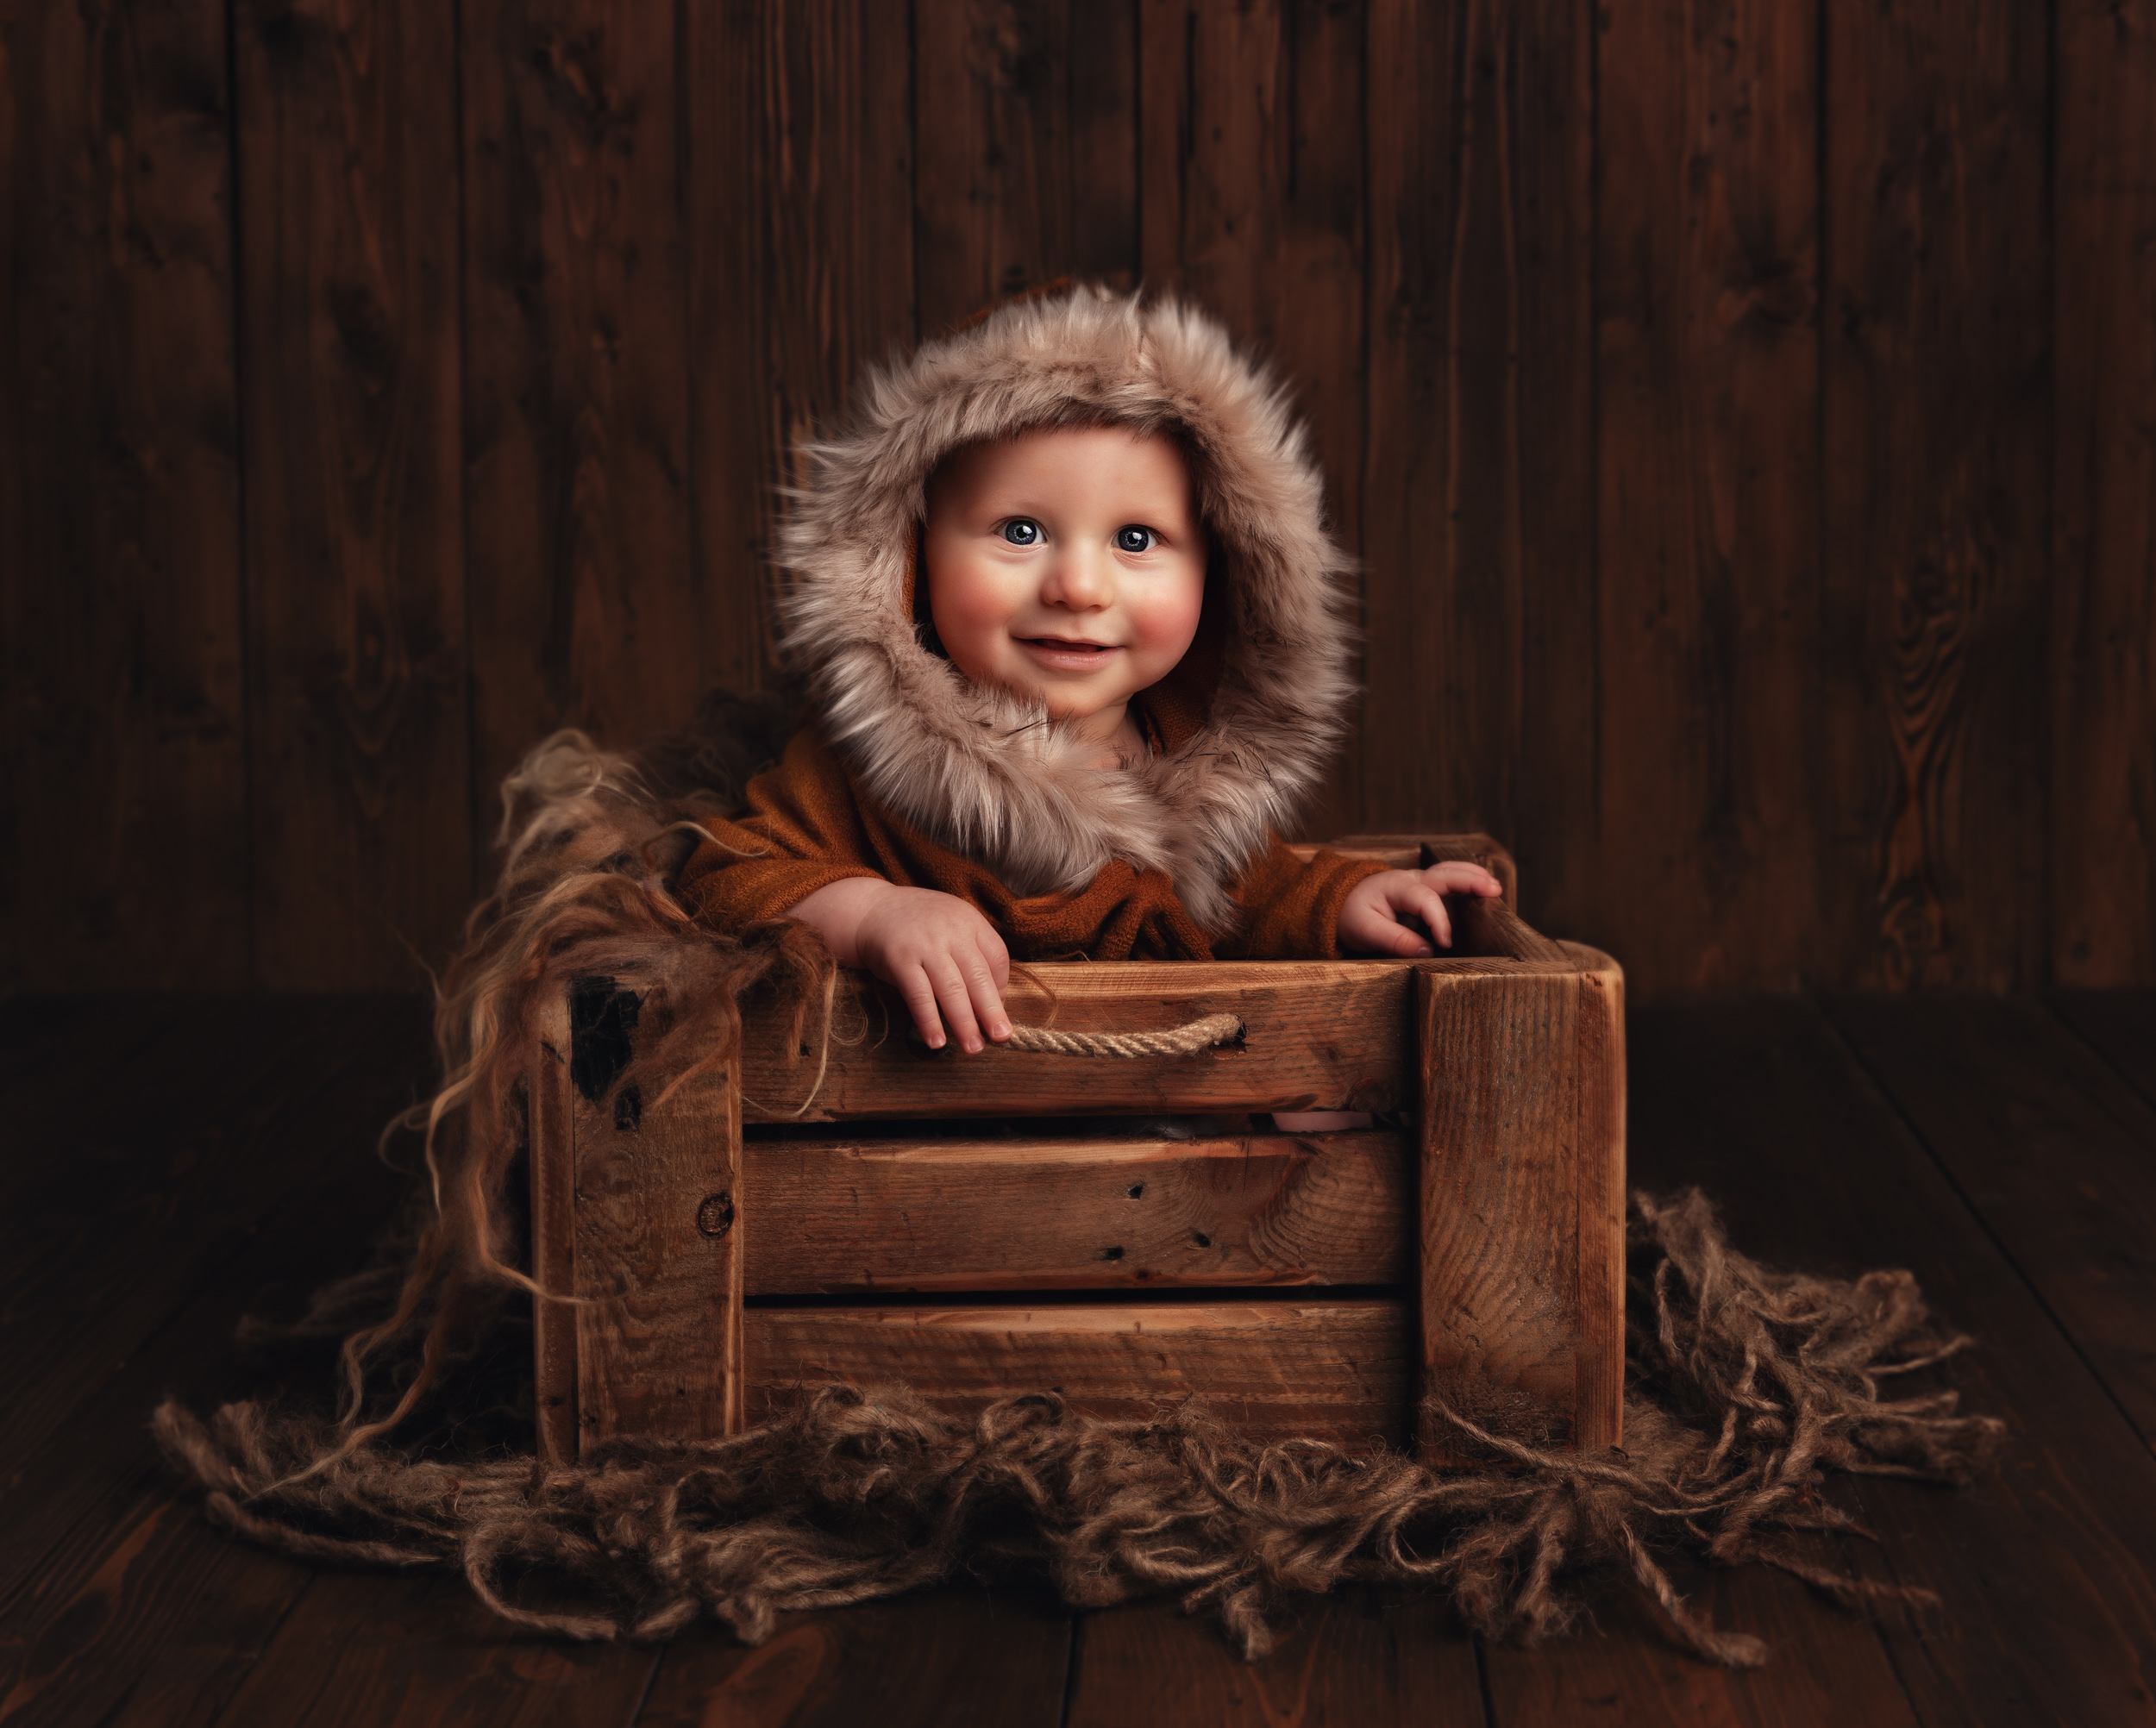 6 month old baby sitting in a crate with a fur hood during a milestone session in Sandbach, Cheshire